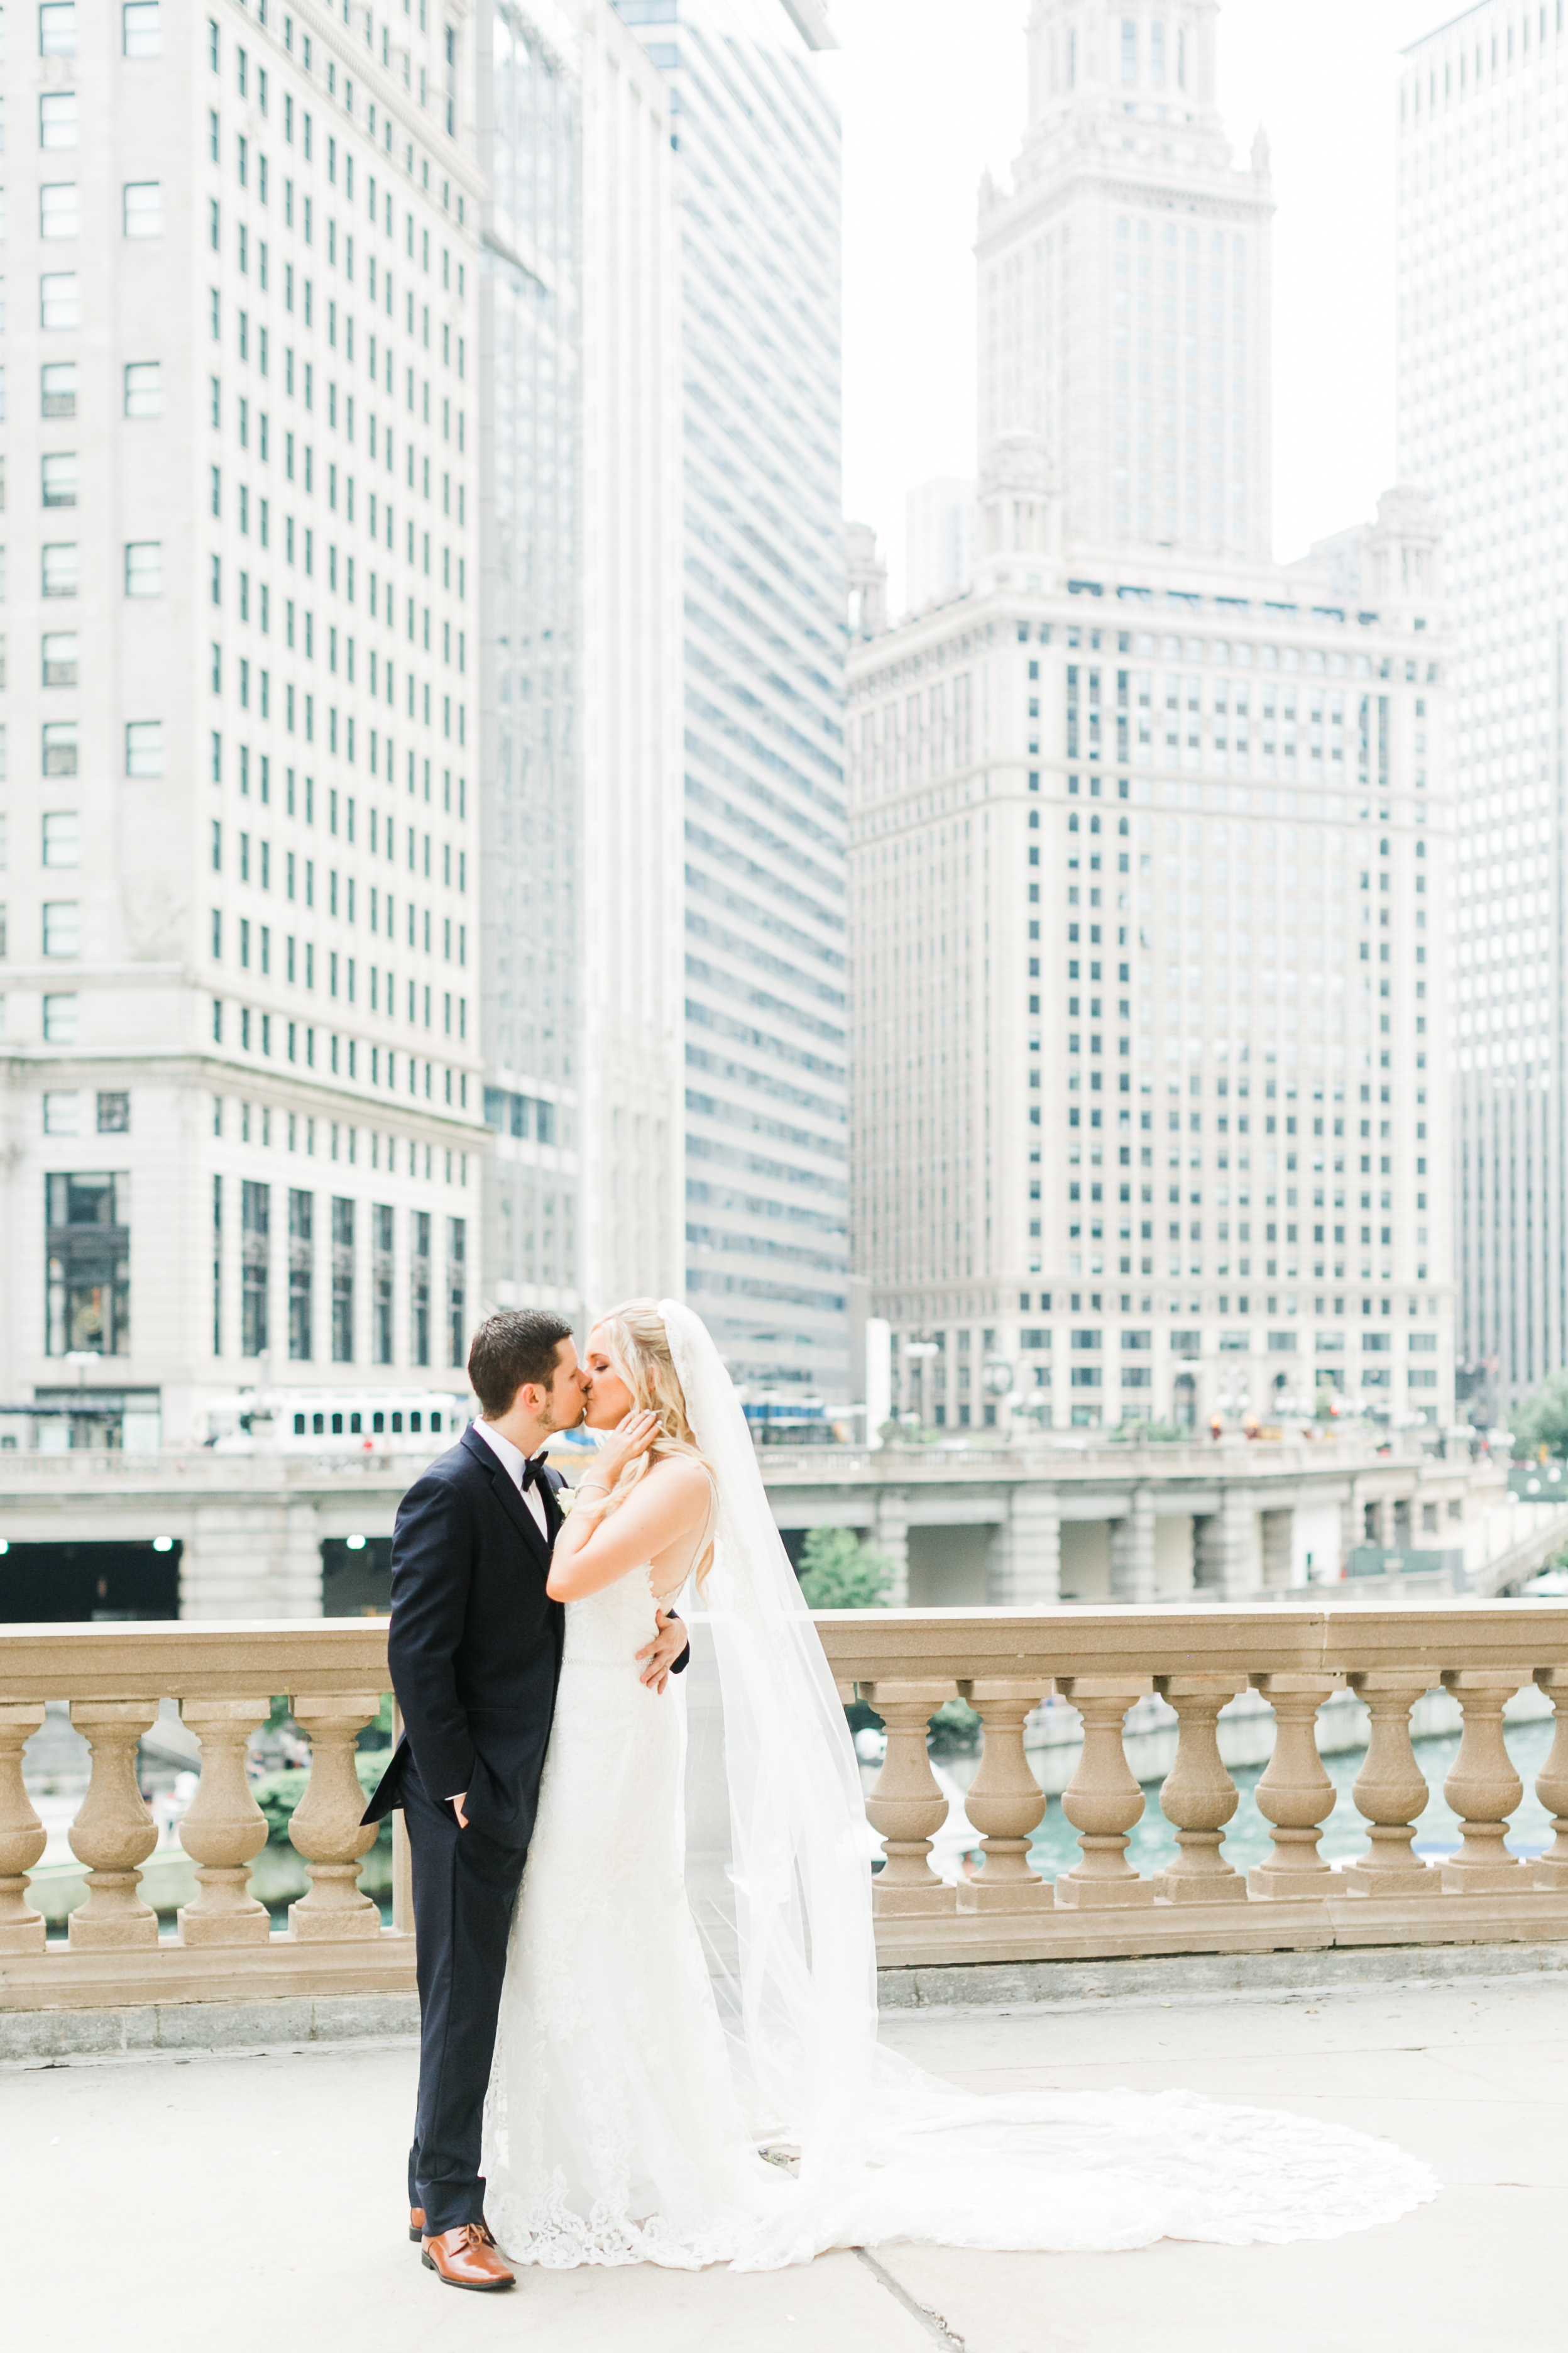 Chicago Wedding Photographer | Janet D Photography-33